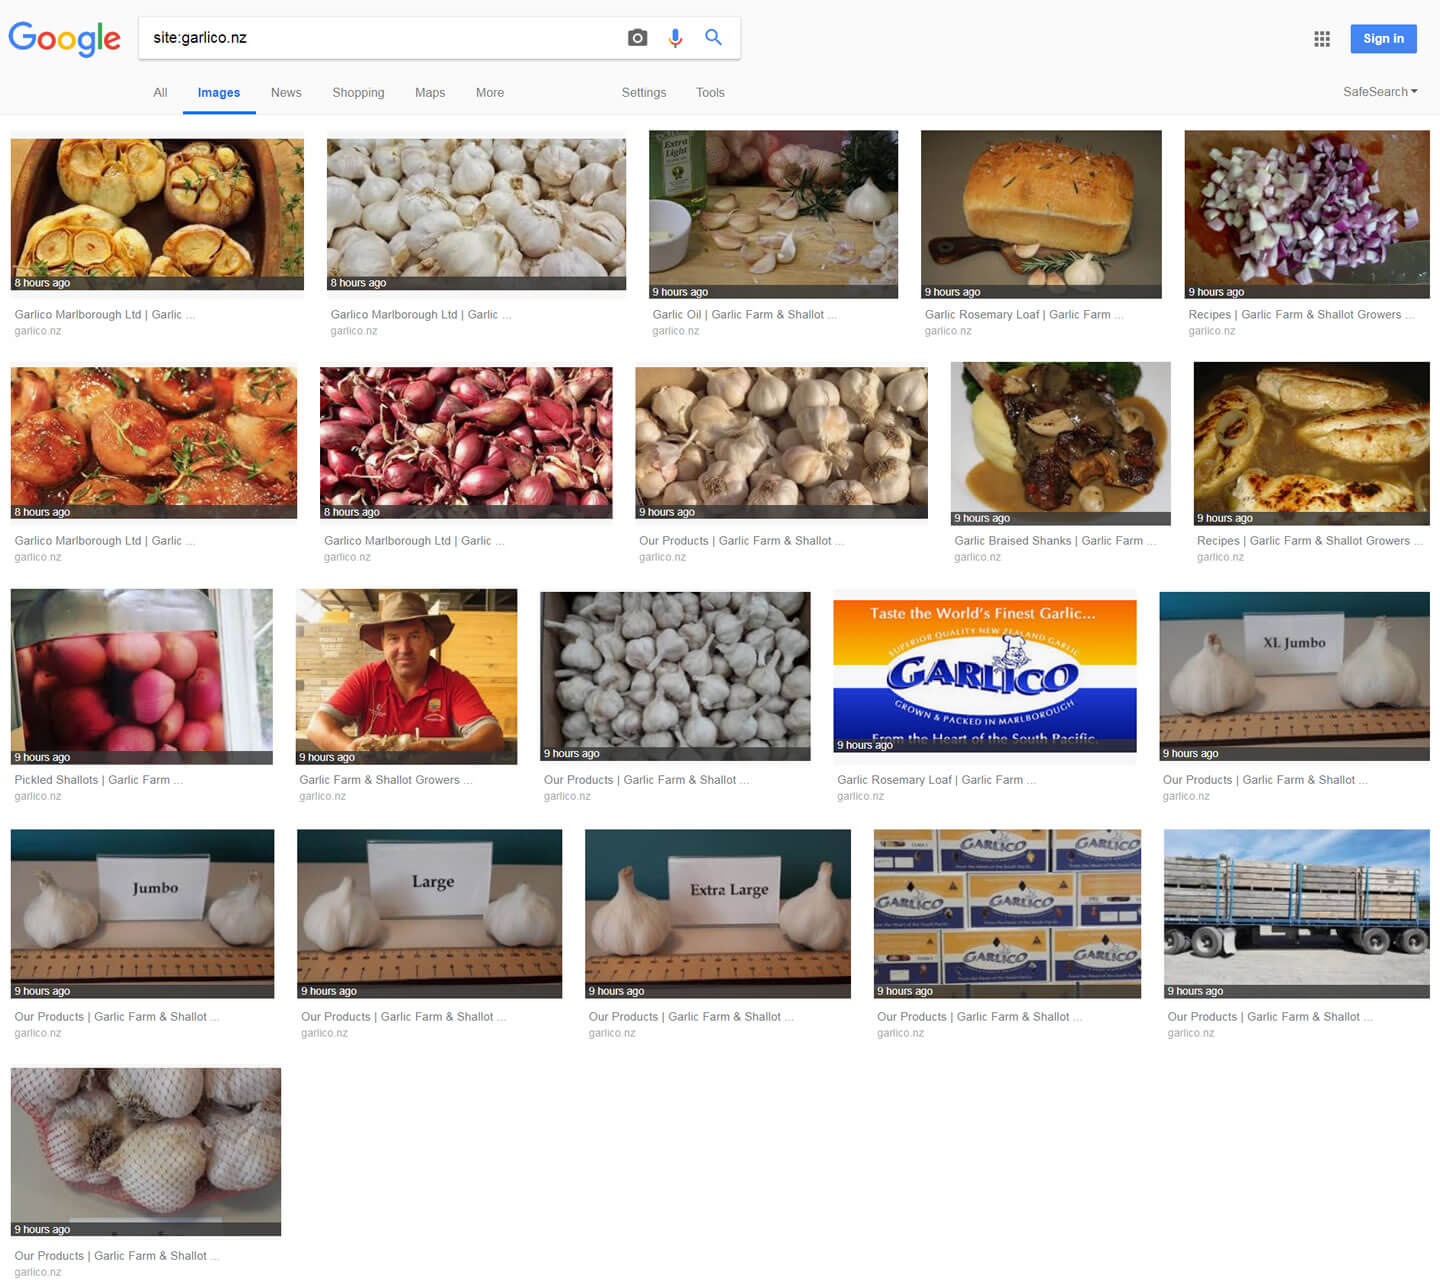 Image Search Results For Garlico on 2018-10-13